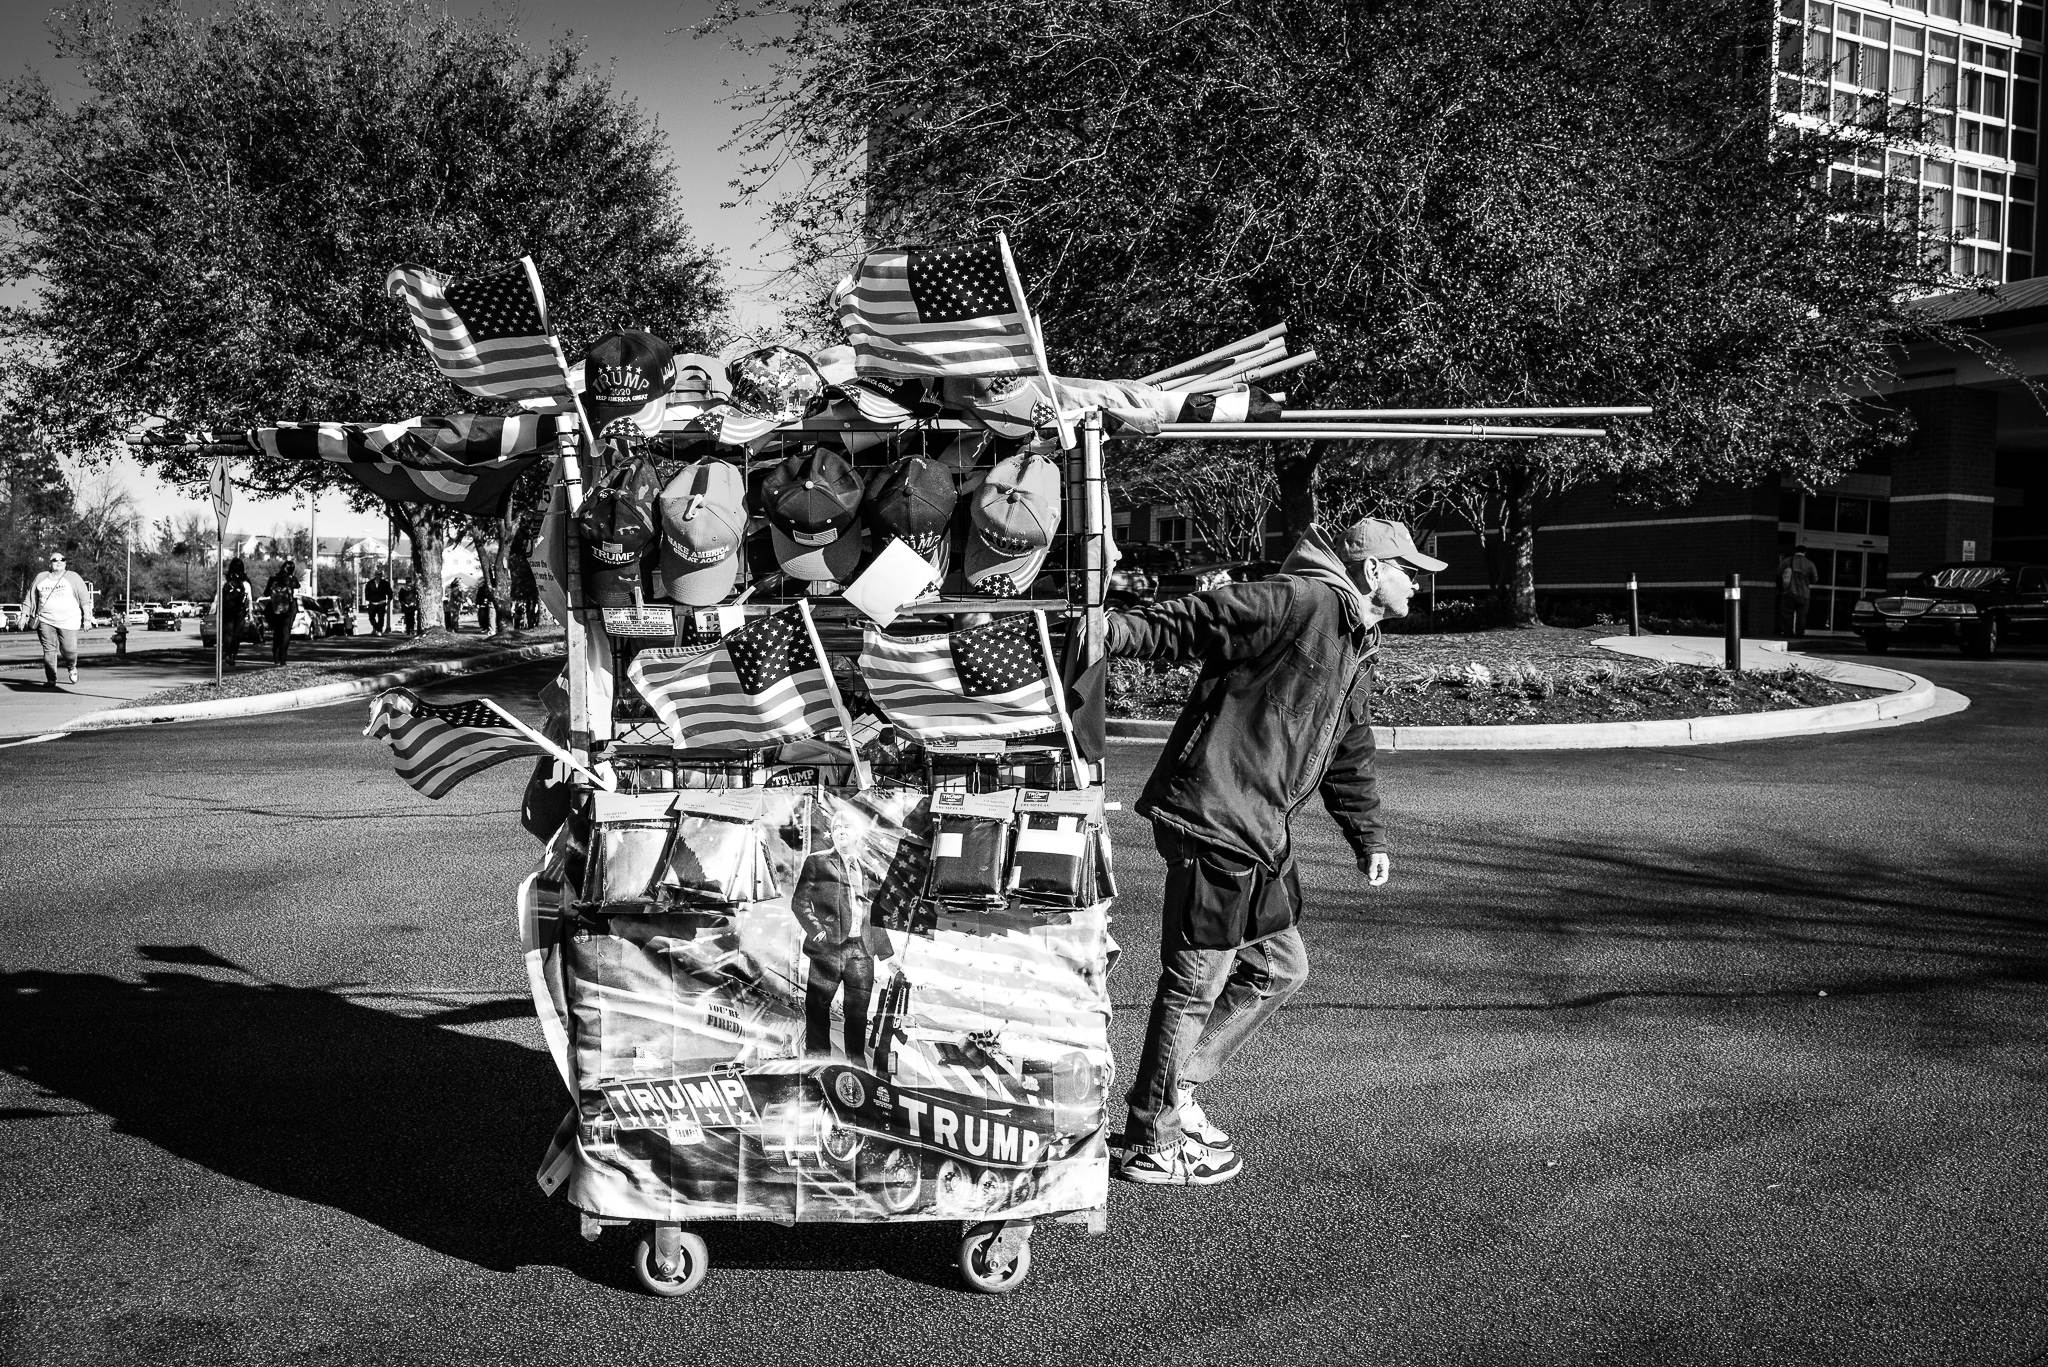 A MAGA merchant pulls his cart across a parking lot at a Trump rally in North Charleston, South Carolina. Photo: Lance Monotone.